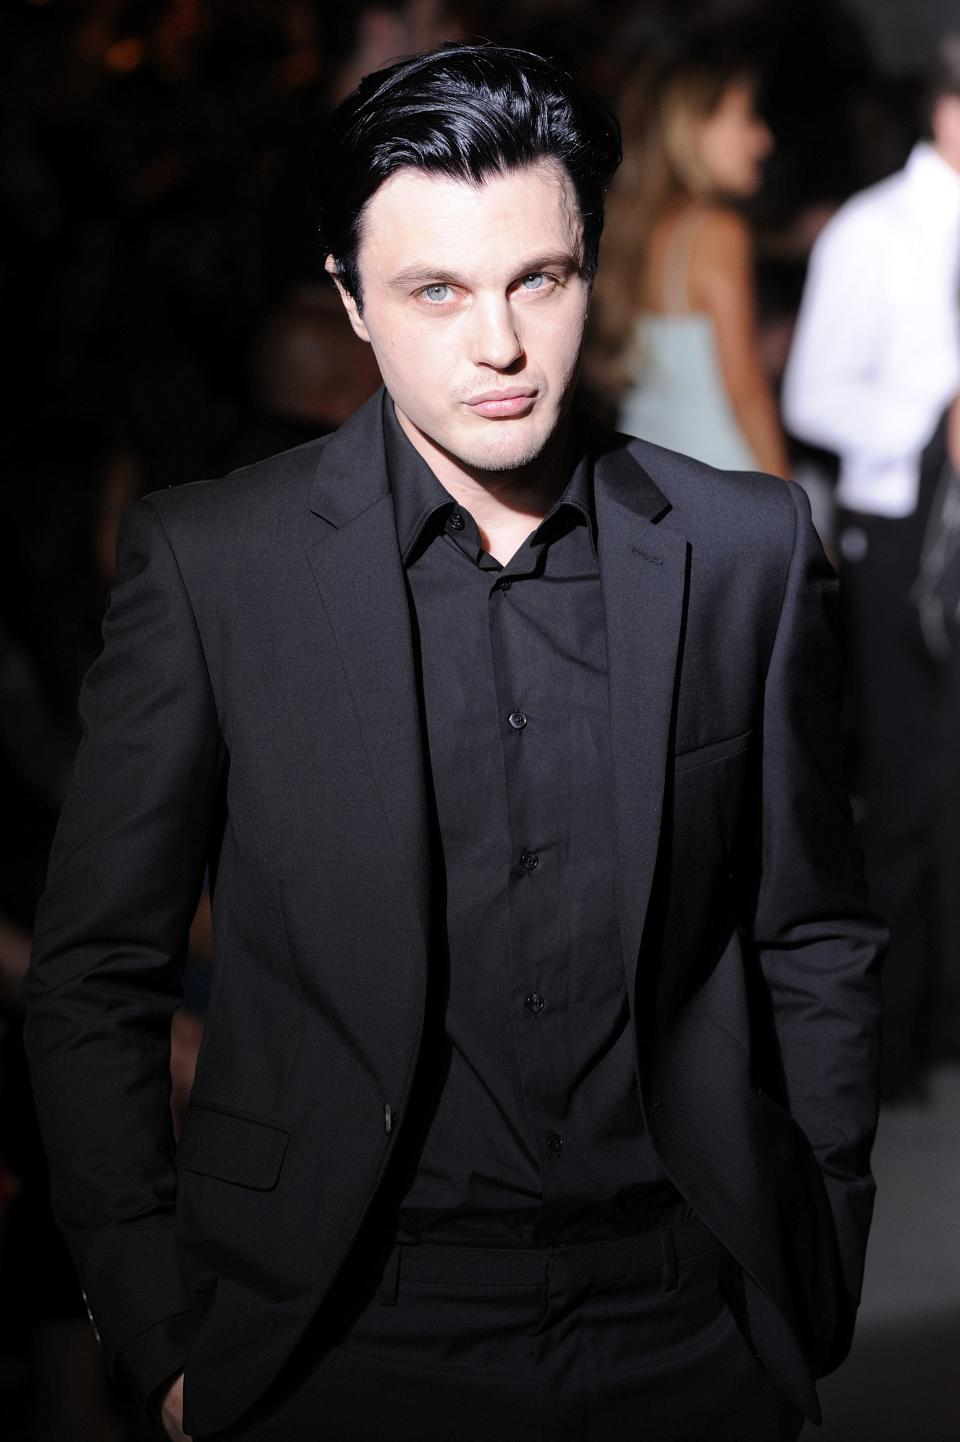 American actor and musician Michael Pitt poses during the Calvin Klein men's Spring-Summer Collection 2013 in Milan, Italy, Sunday, June 23, 2013. (AP Photo/Giuseppe Aresu)